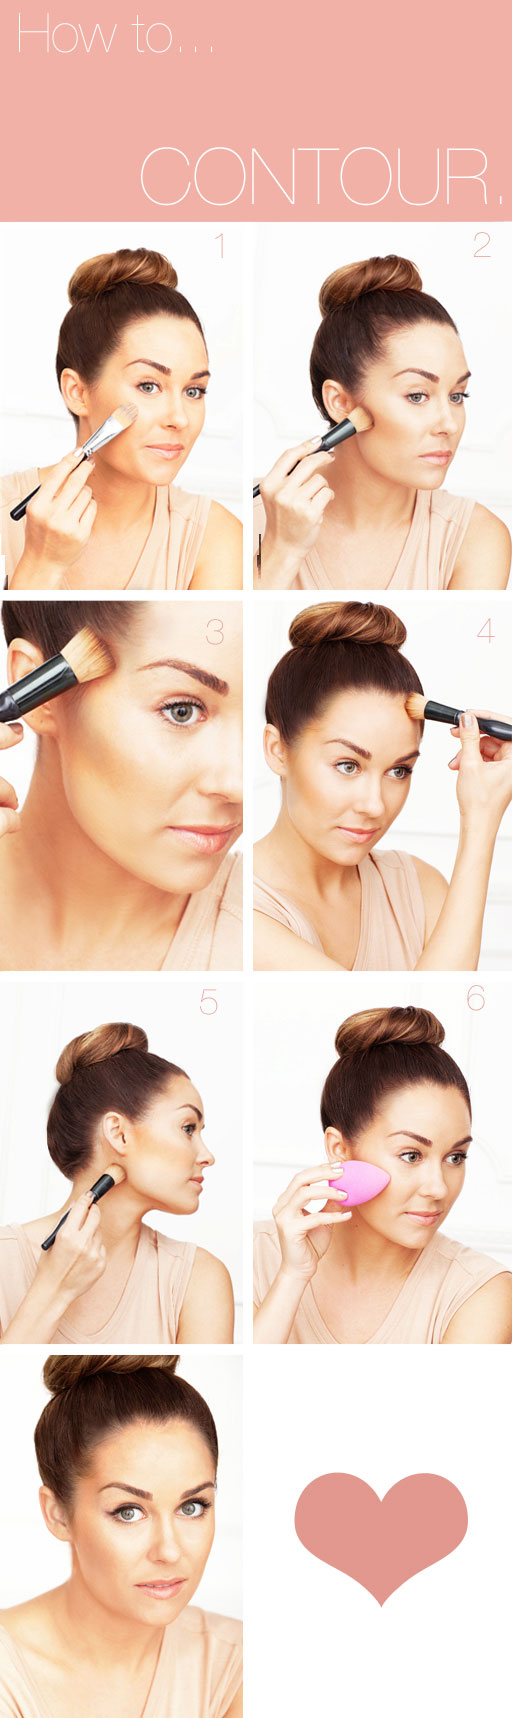 http://thebeautydepartment.com/wp-content/uploads/2011/04/CONTOUR-post-copy22221.jpg